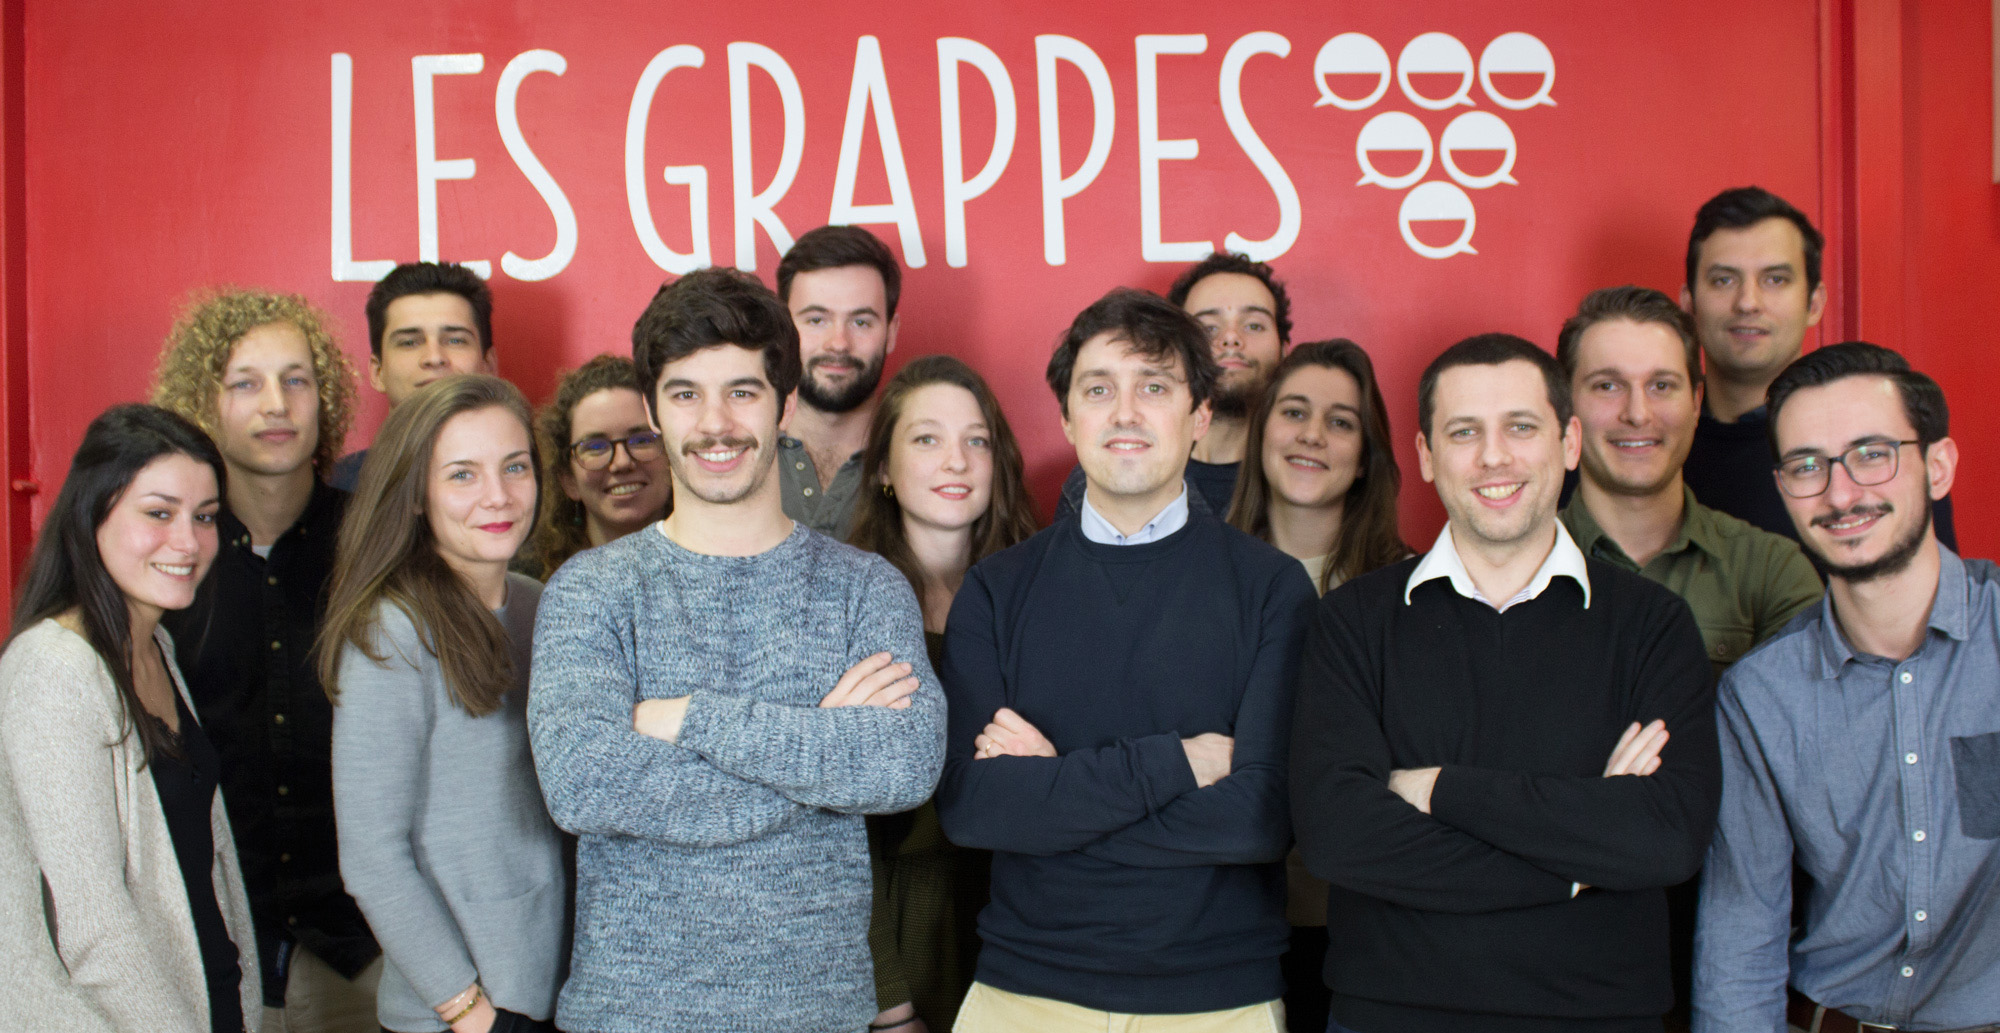 les grappes recrute !